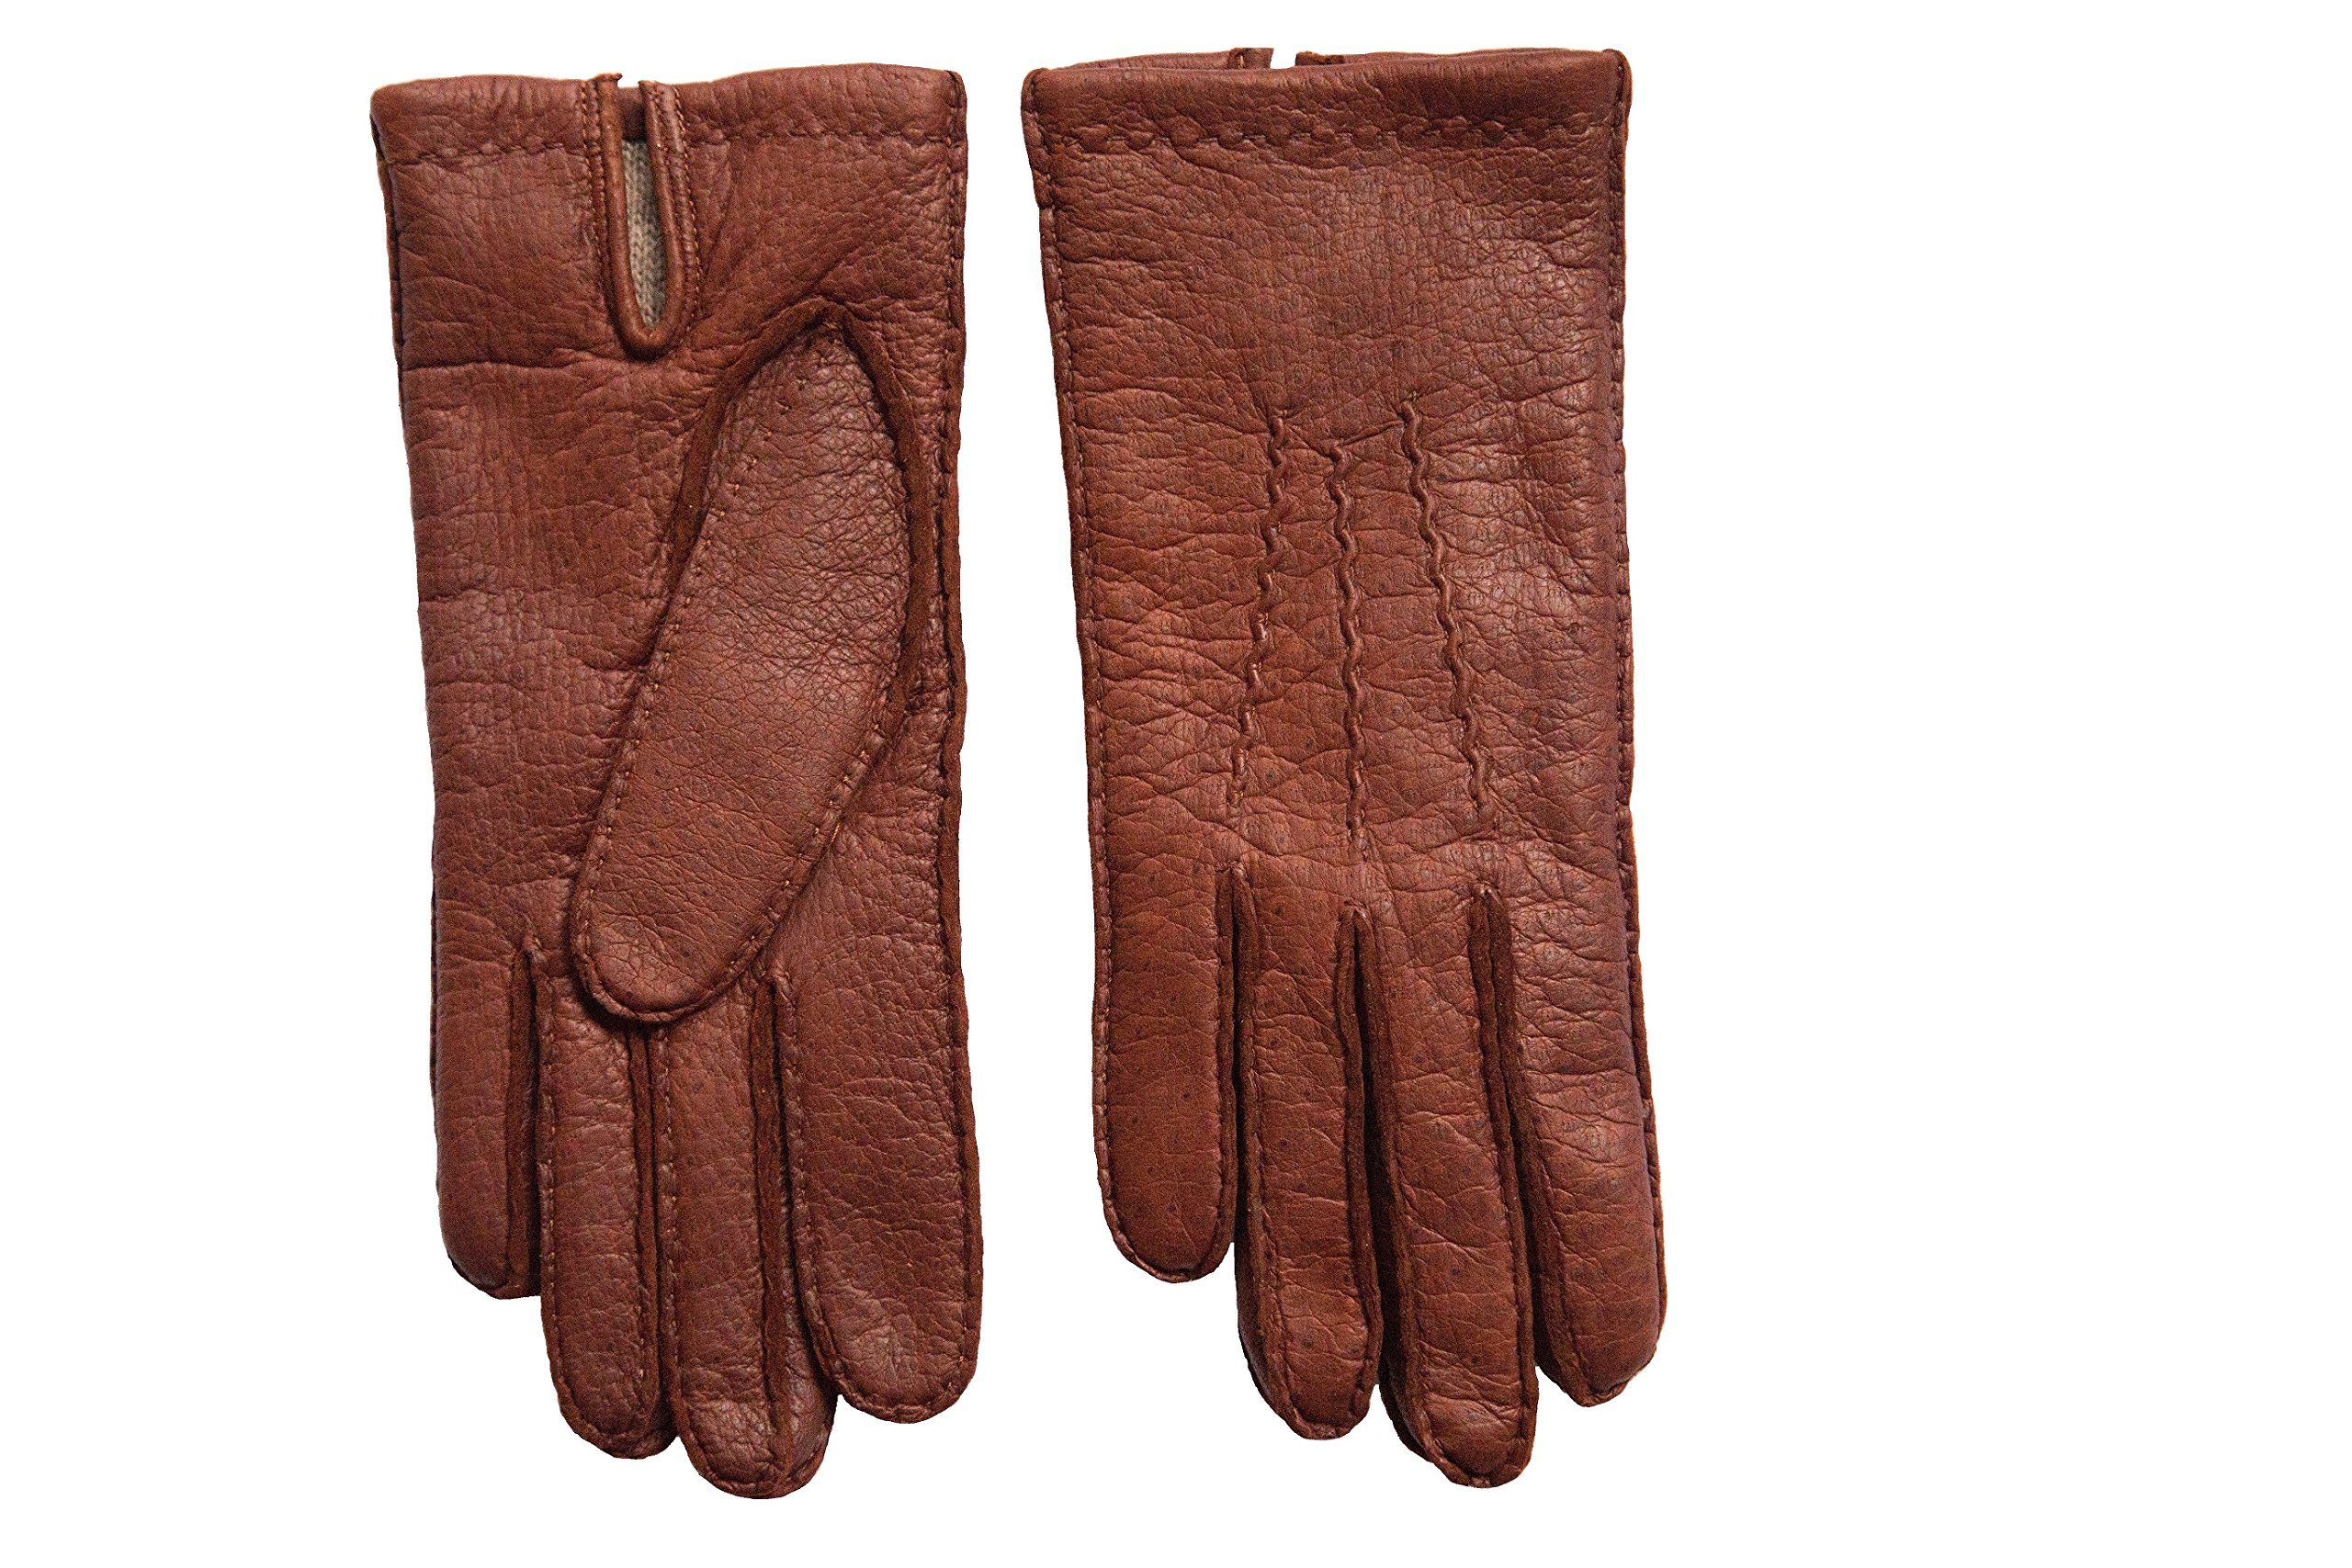 Men's Peccary Winter Gloves Cashmere Lined Hand Sewn Color English Tan by Hungant (7.5, English Tan)